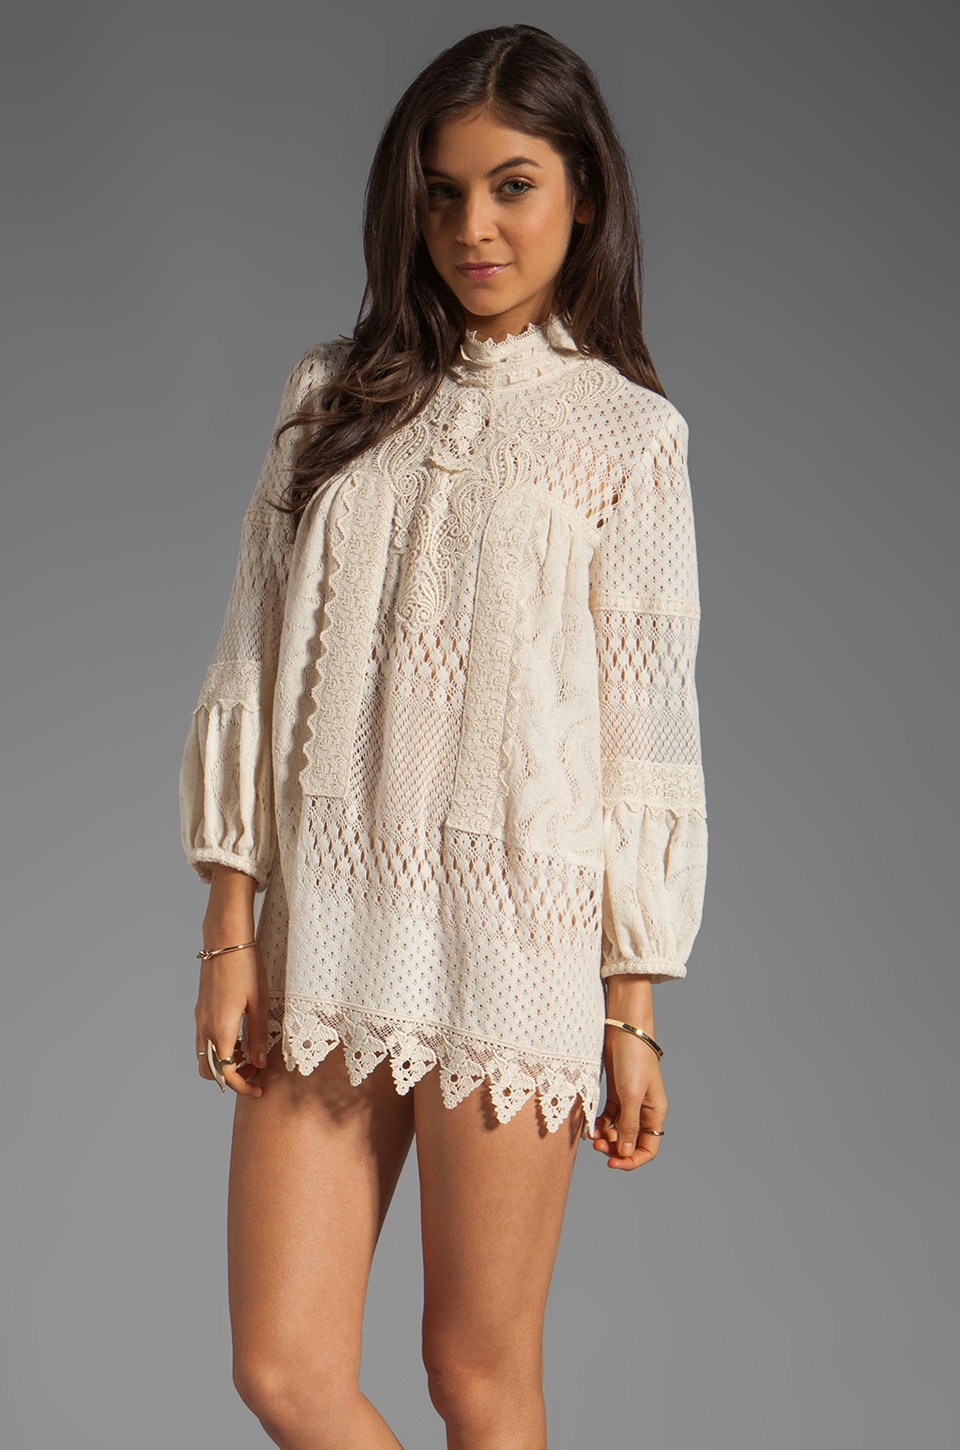 Anna Sui Pinwheel Mixed Lace Tunic in Cream